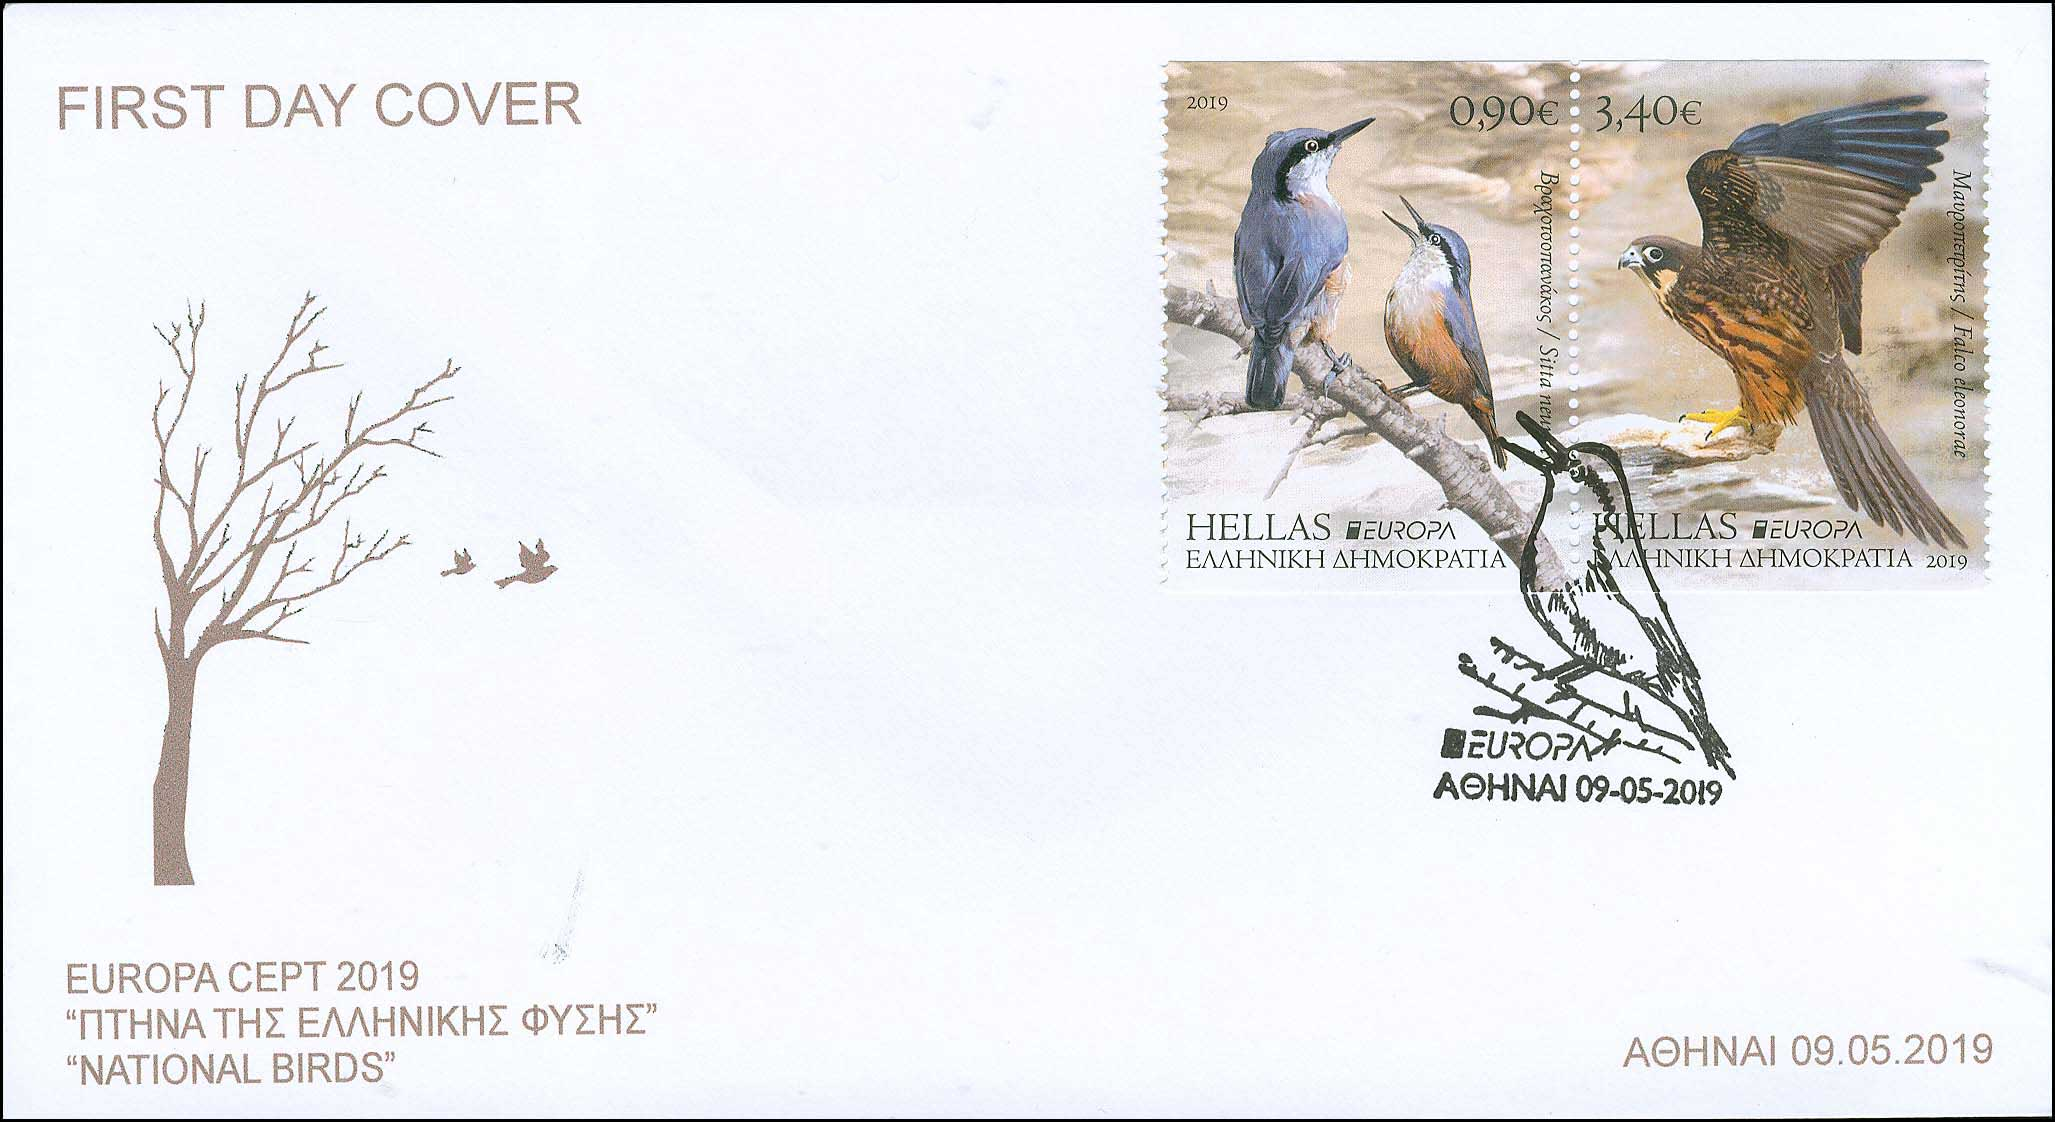 Lot 654 - -  FIRST DAY COVER First day cover -  A. Karamitsos Public Auction 668 General Philatelic Auction